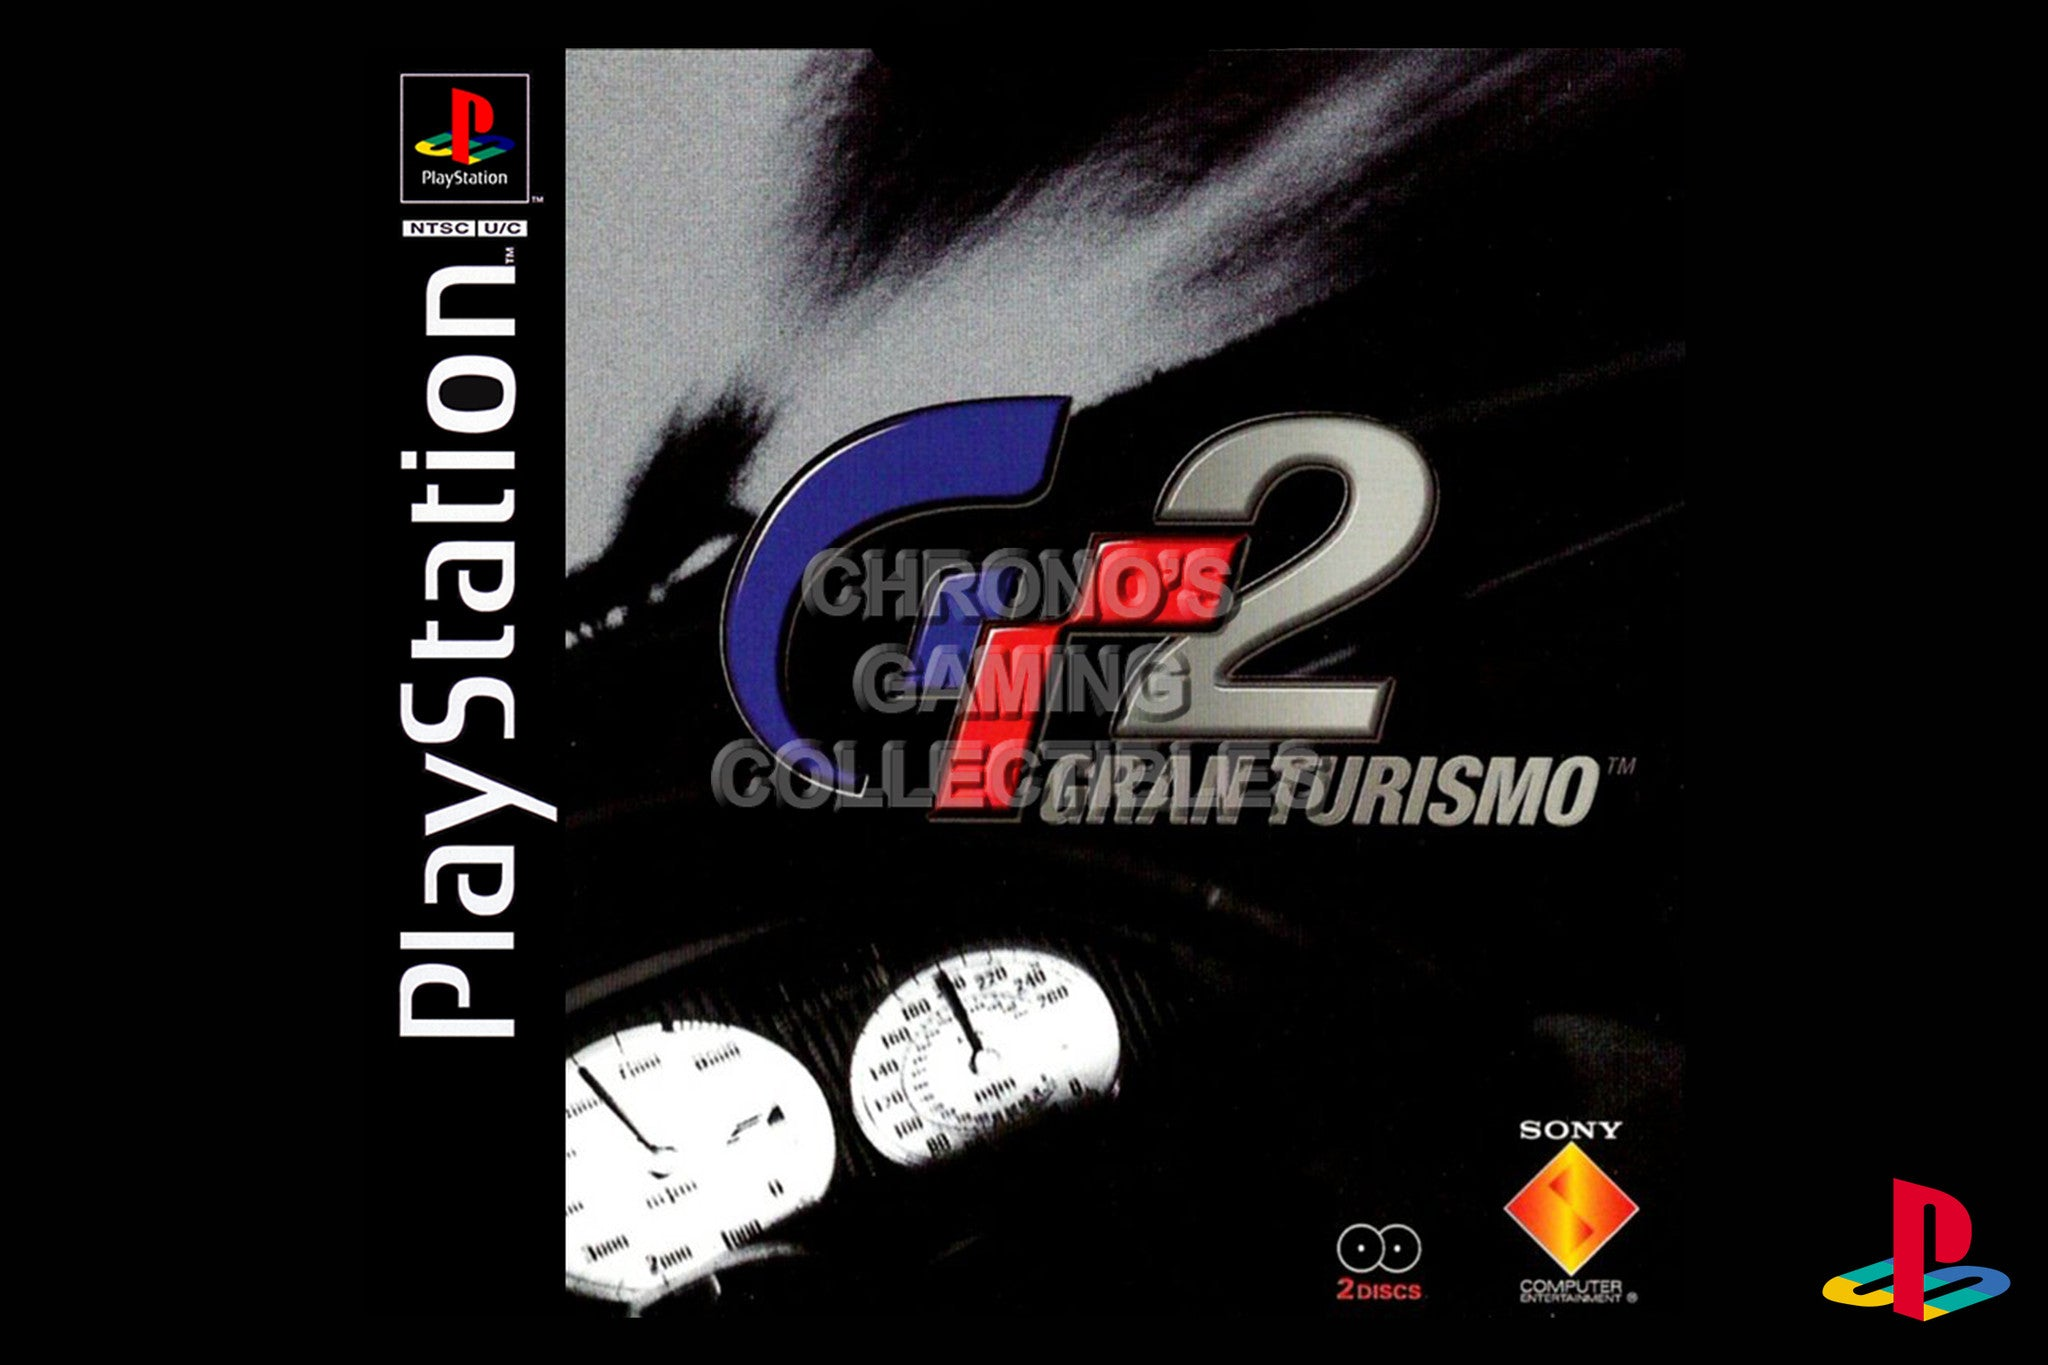 Classic Playstation Poster